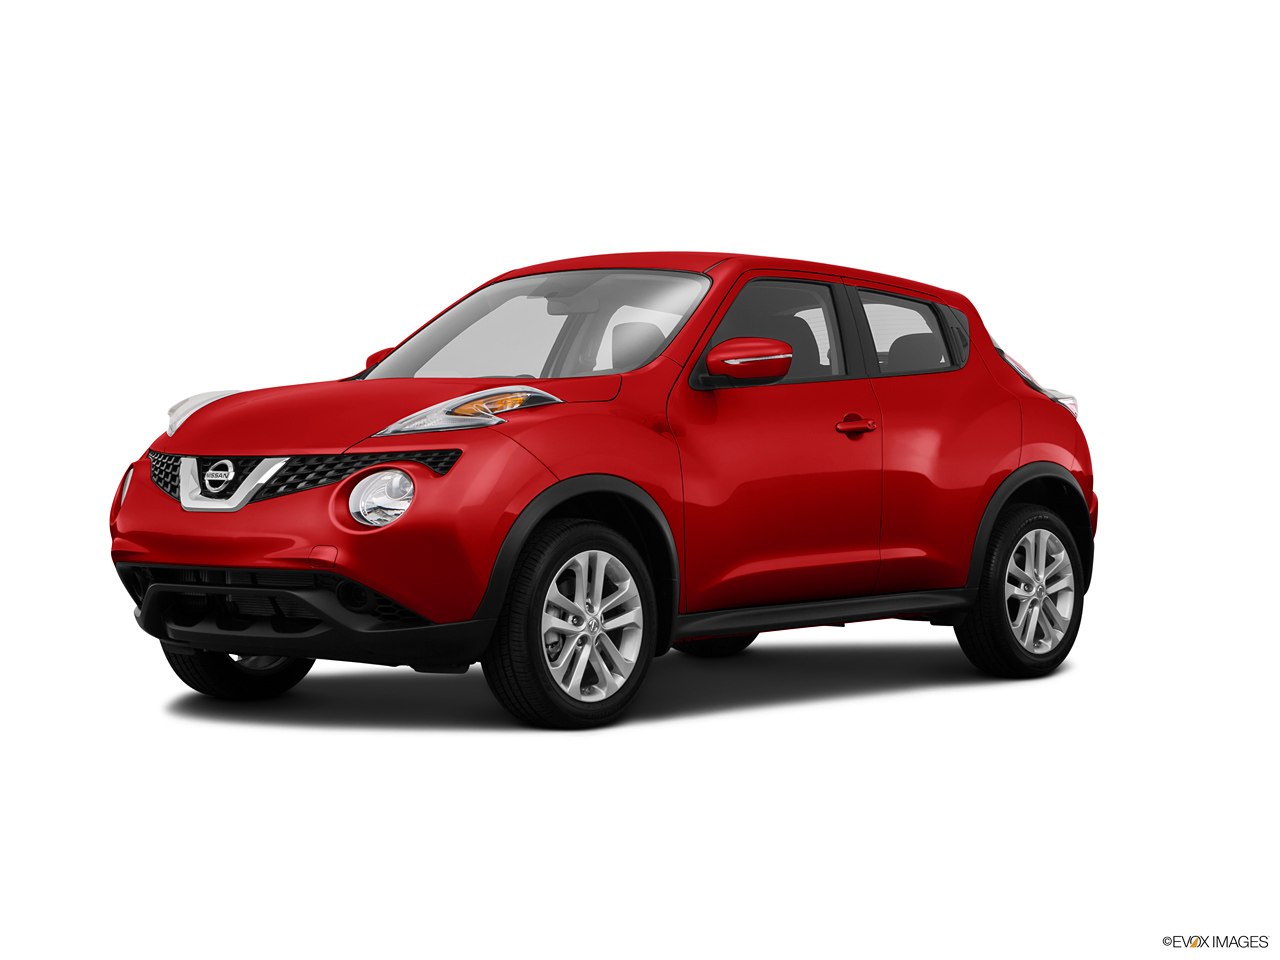 edition juke drive reviews kia original car nissan info stinger price review news and s driver photo first photos